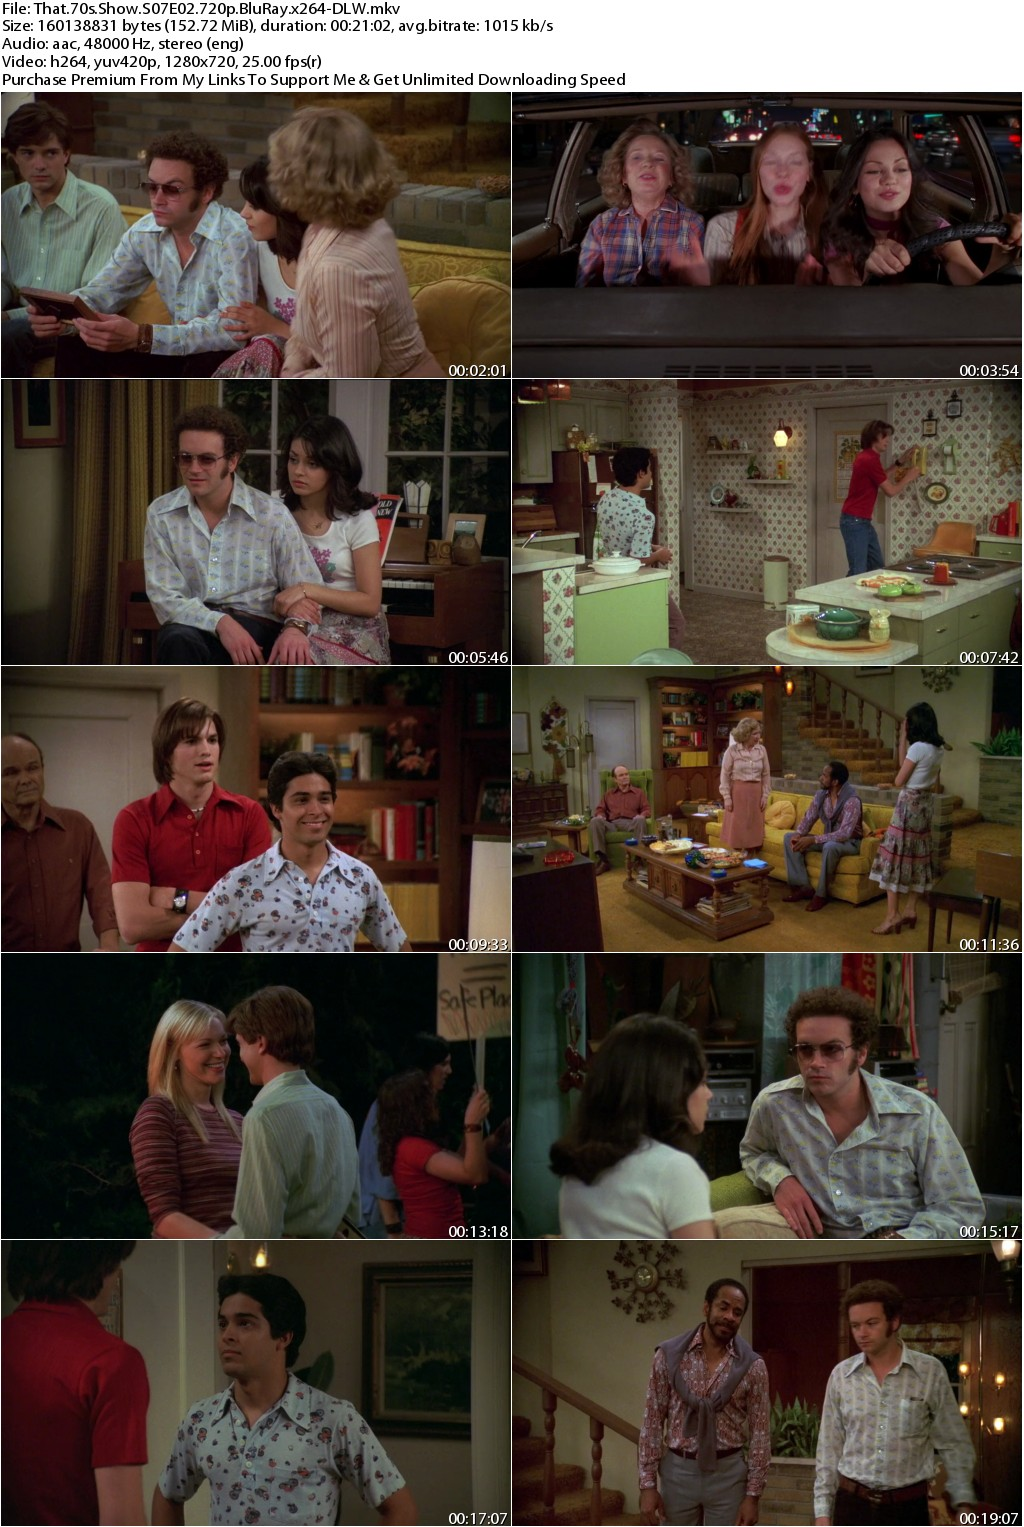 That 70s Show Season 07 Complete 720p BluRay x264-DLW